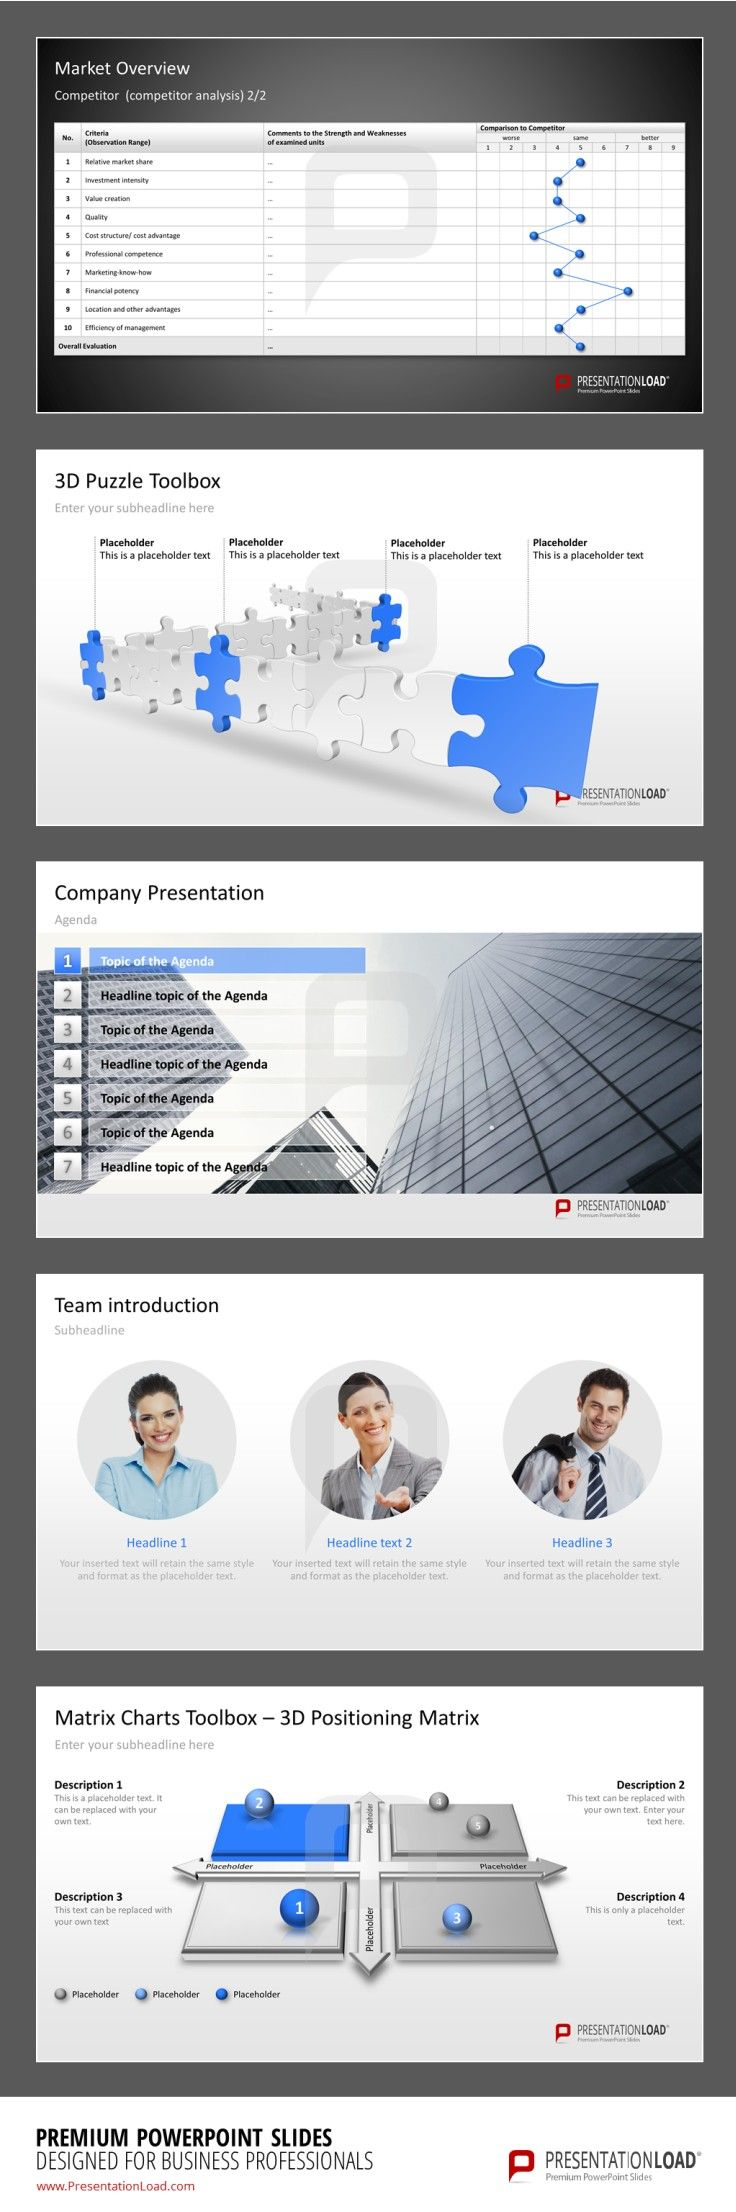 professional powerpoint presentations Images: professional quality images,  but if you often make powerpoint presentations, it might be worth the investment  good luck with your presentation love, lifehacker.